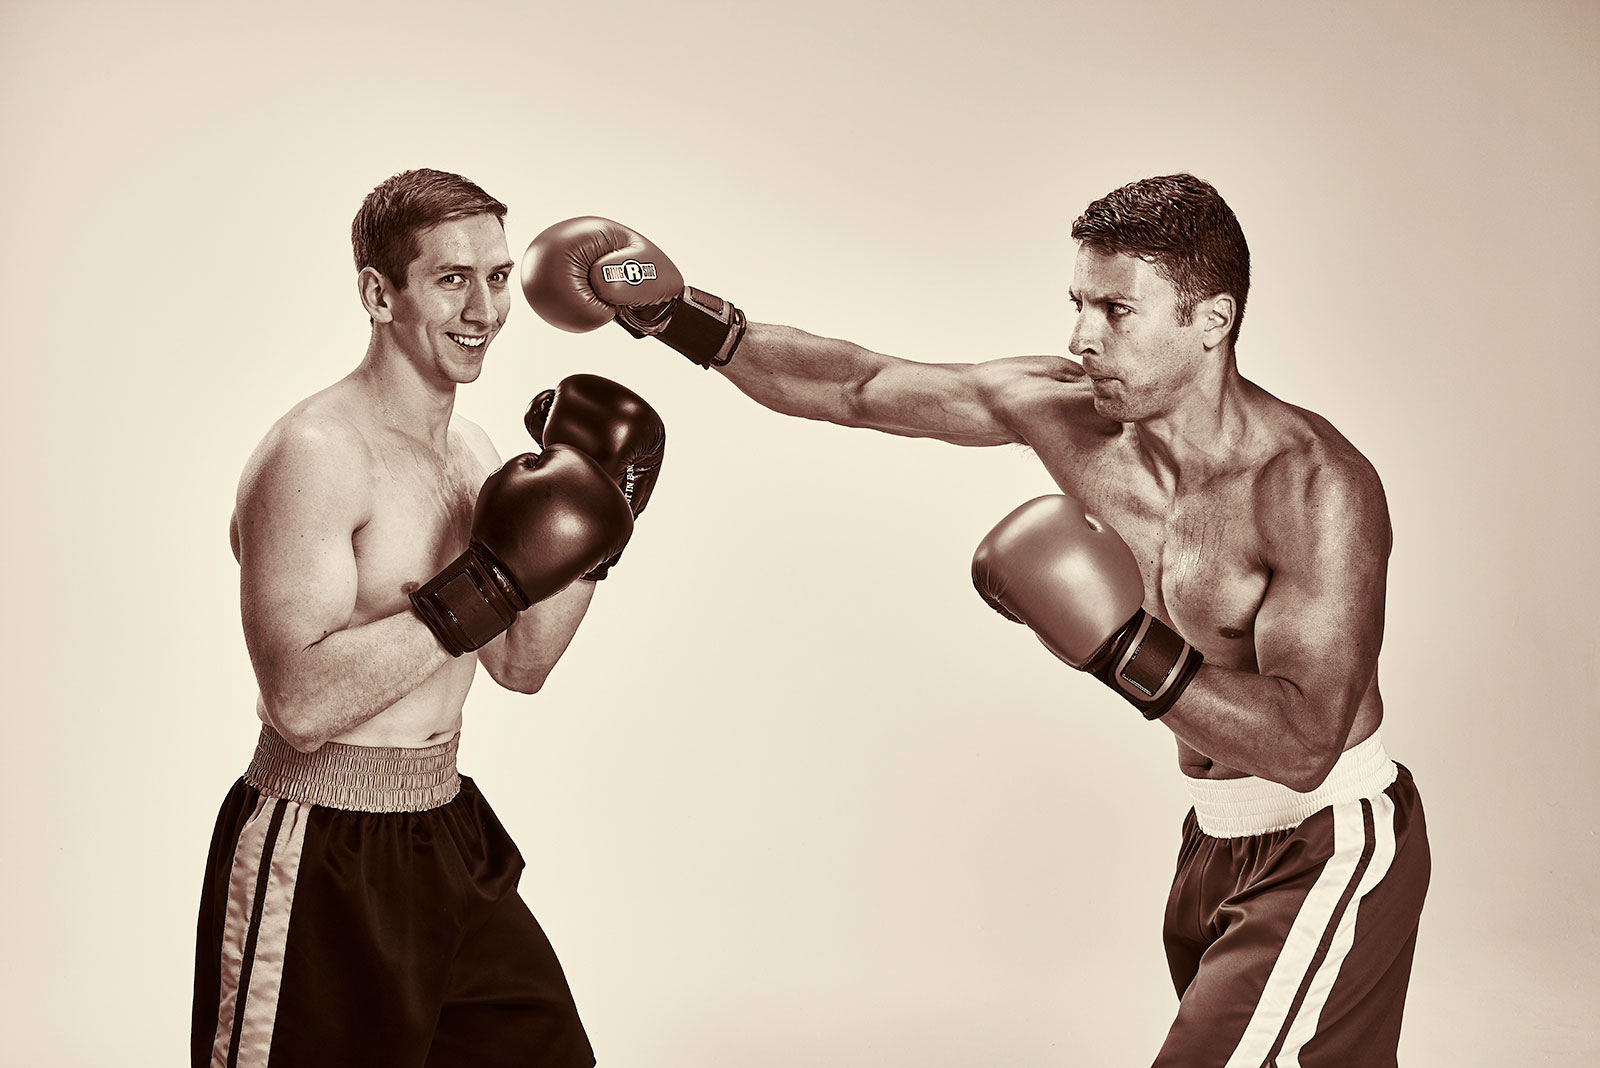 BTS-Boxing-Rob-Gregory.jpg